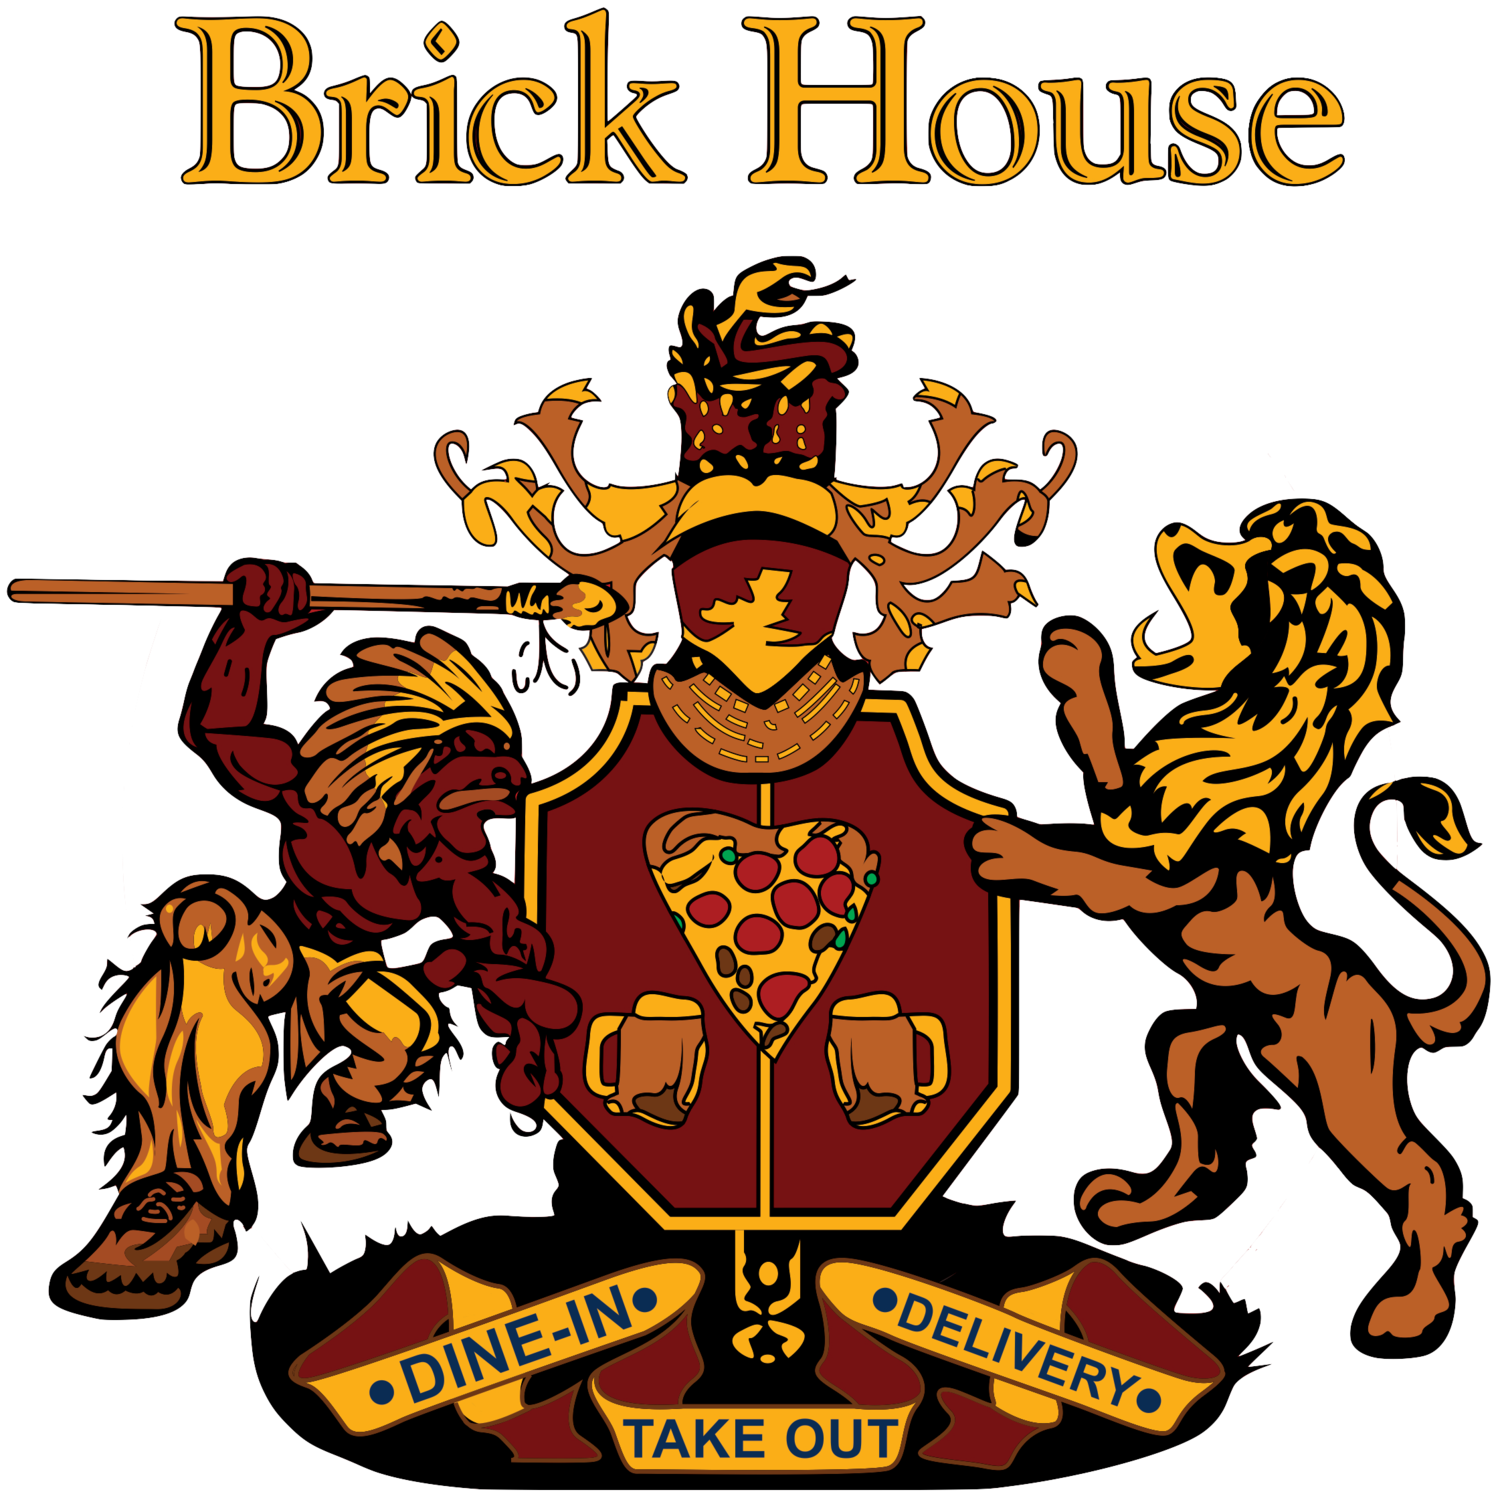 Brick House Restaurant and Bar